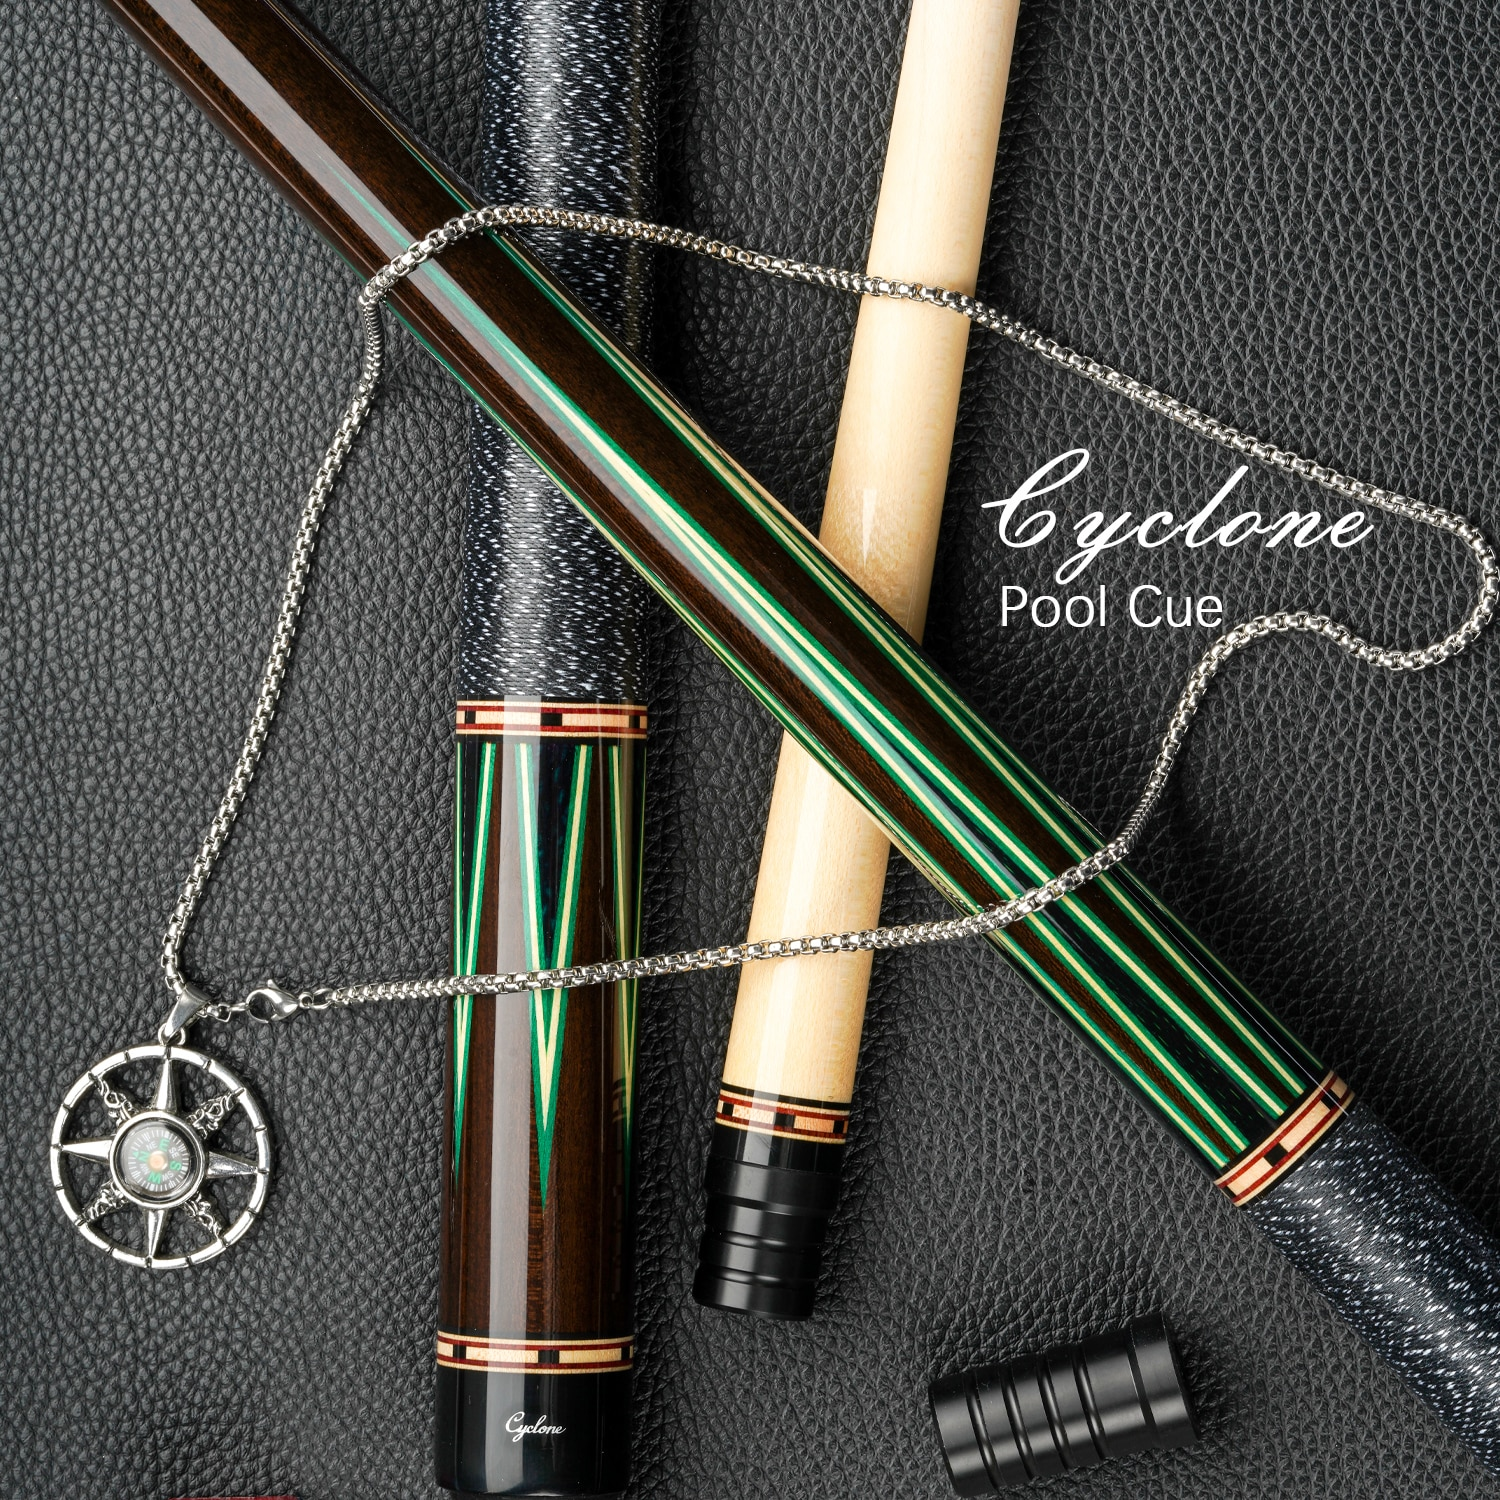 Cyclone-6 Billiard Cue Stick Inlaid Carving Cue 13mm Tip 3*8/8 Radial Pin Handmade Professional Cue By FURY Factory Manufacture